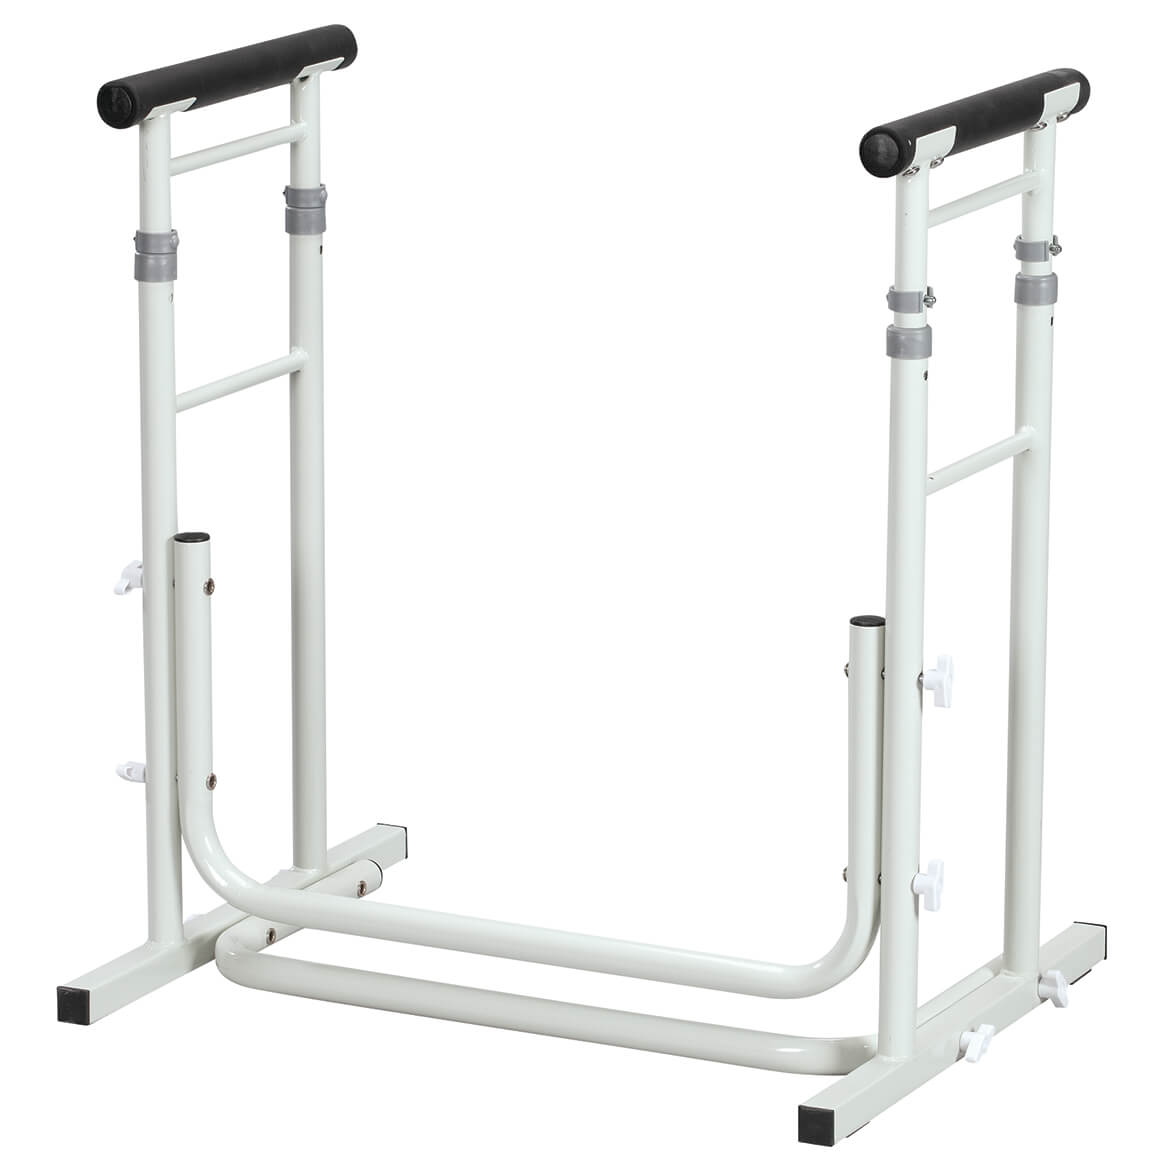 Free Standing Toilet Safety Support with Adjustable Arms-370685